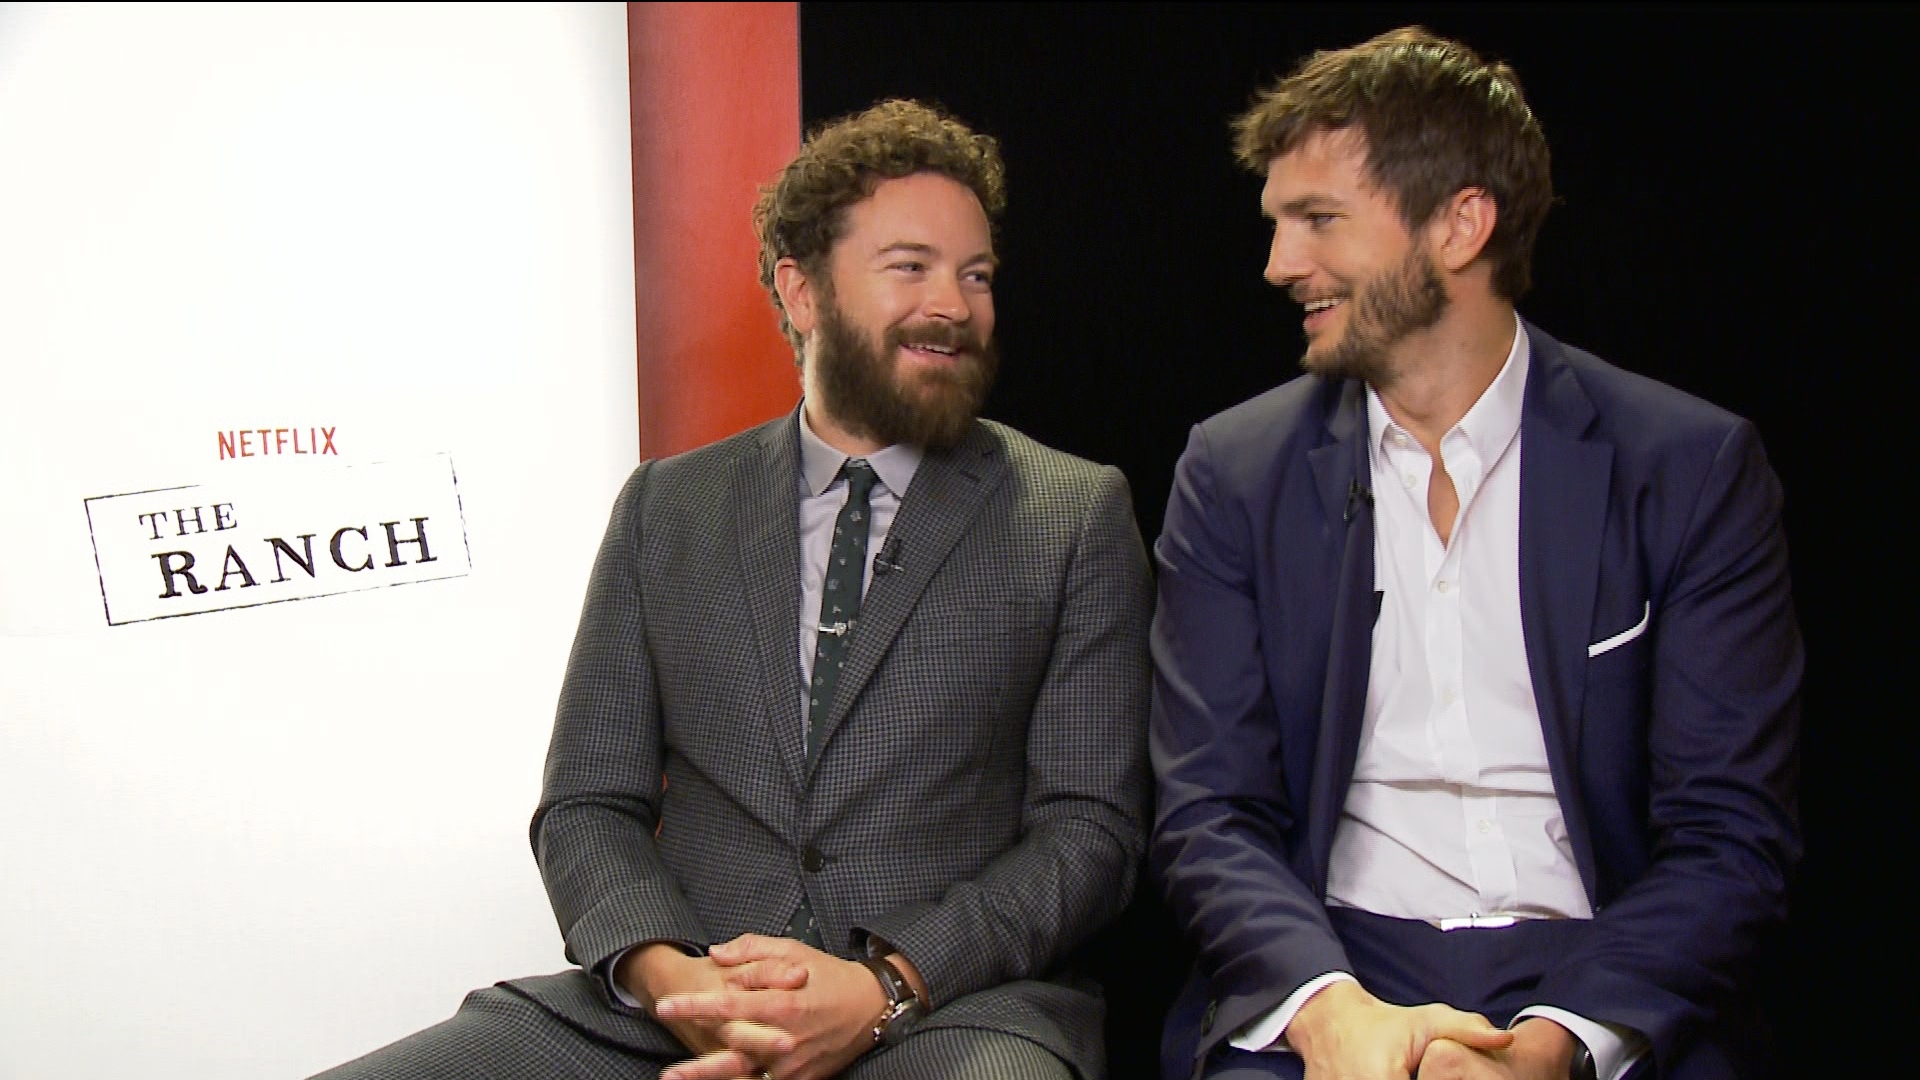 Ashton Kutcher and Danny Masterson Scoop on 'The Ranch'